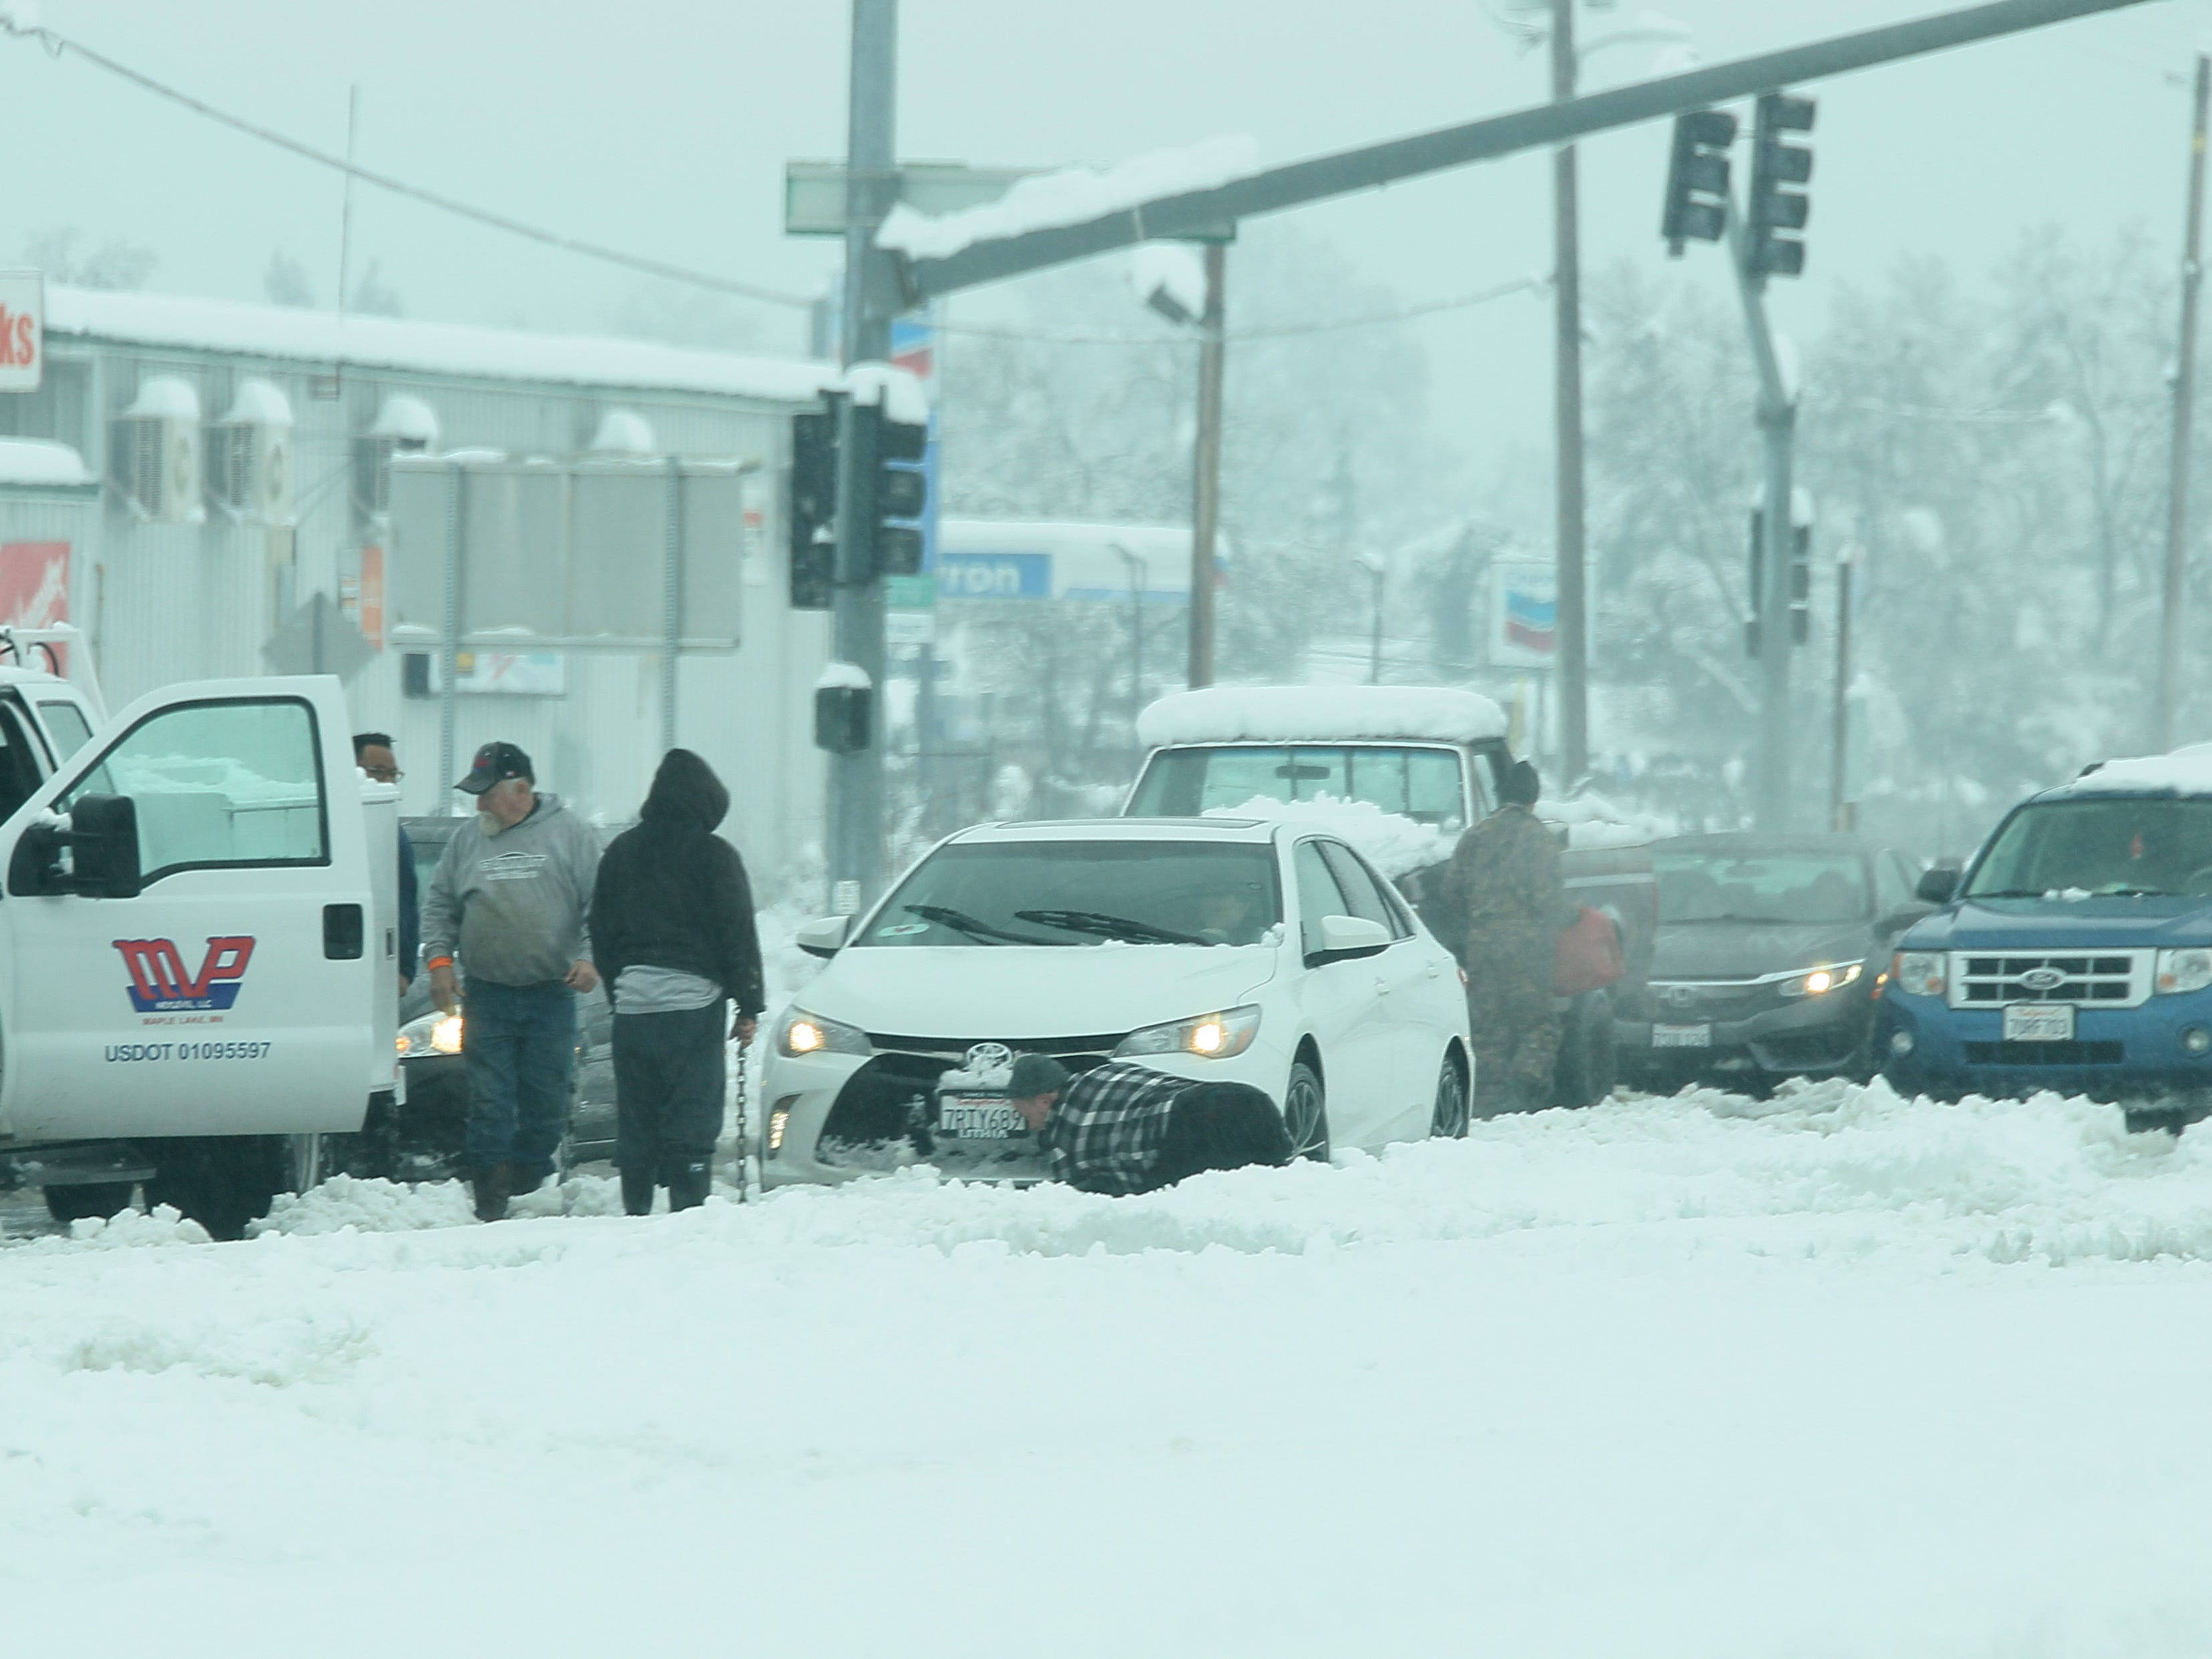 Stranded motorist help each other Wednesday, Feb. 13, 2019 remove their cars from Highway 273 at Deschutes Road in Anderson, California. (Hung T. Vu/Special to the Record Searchlight)